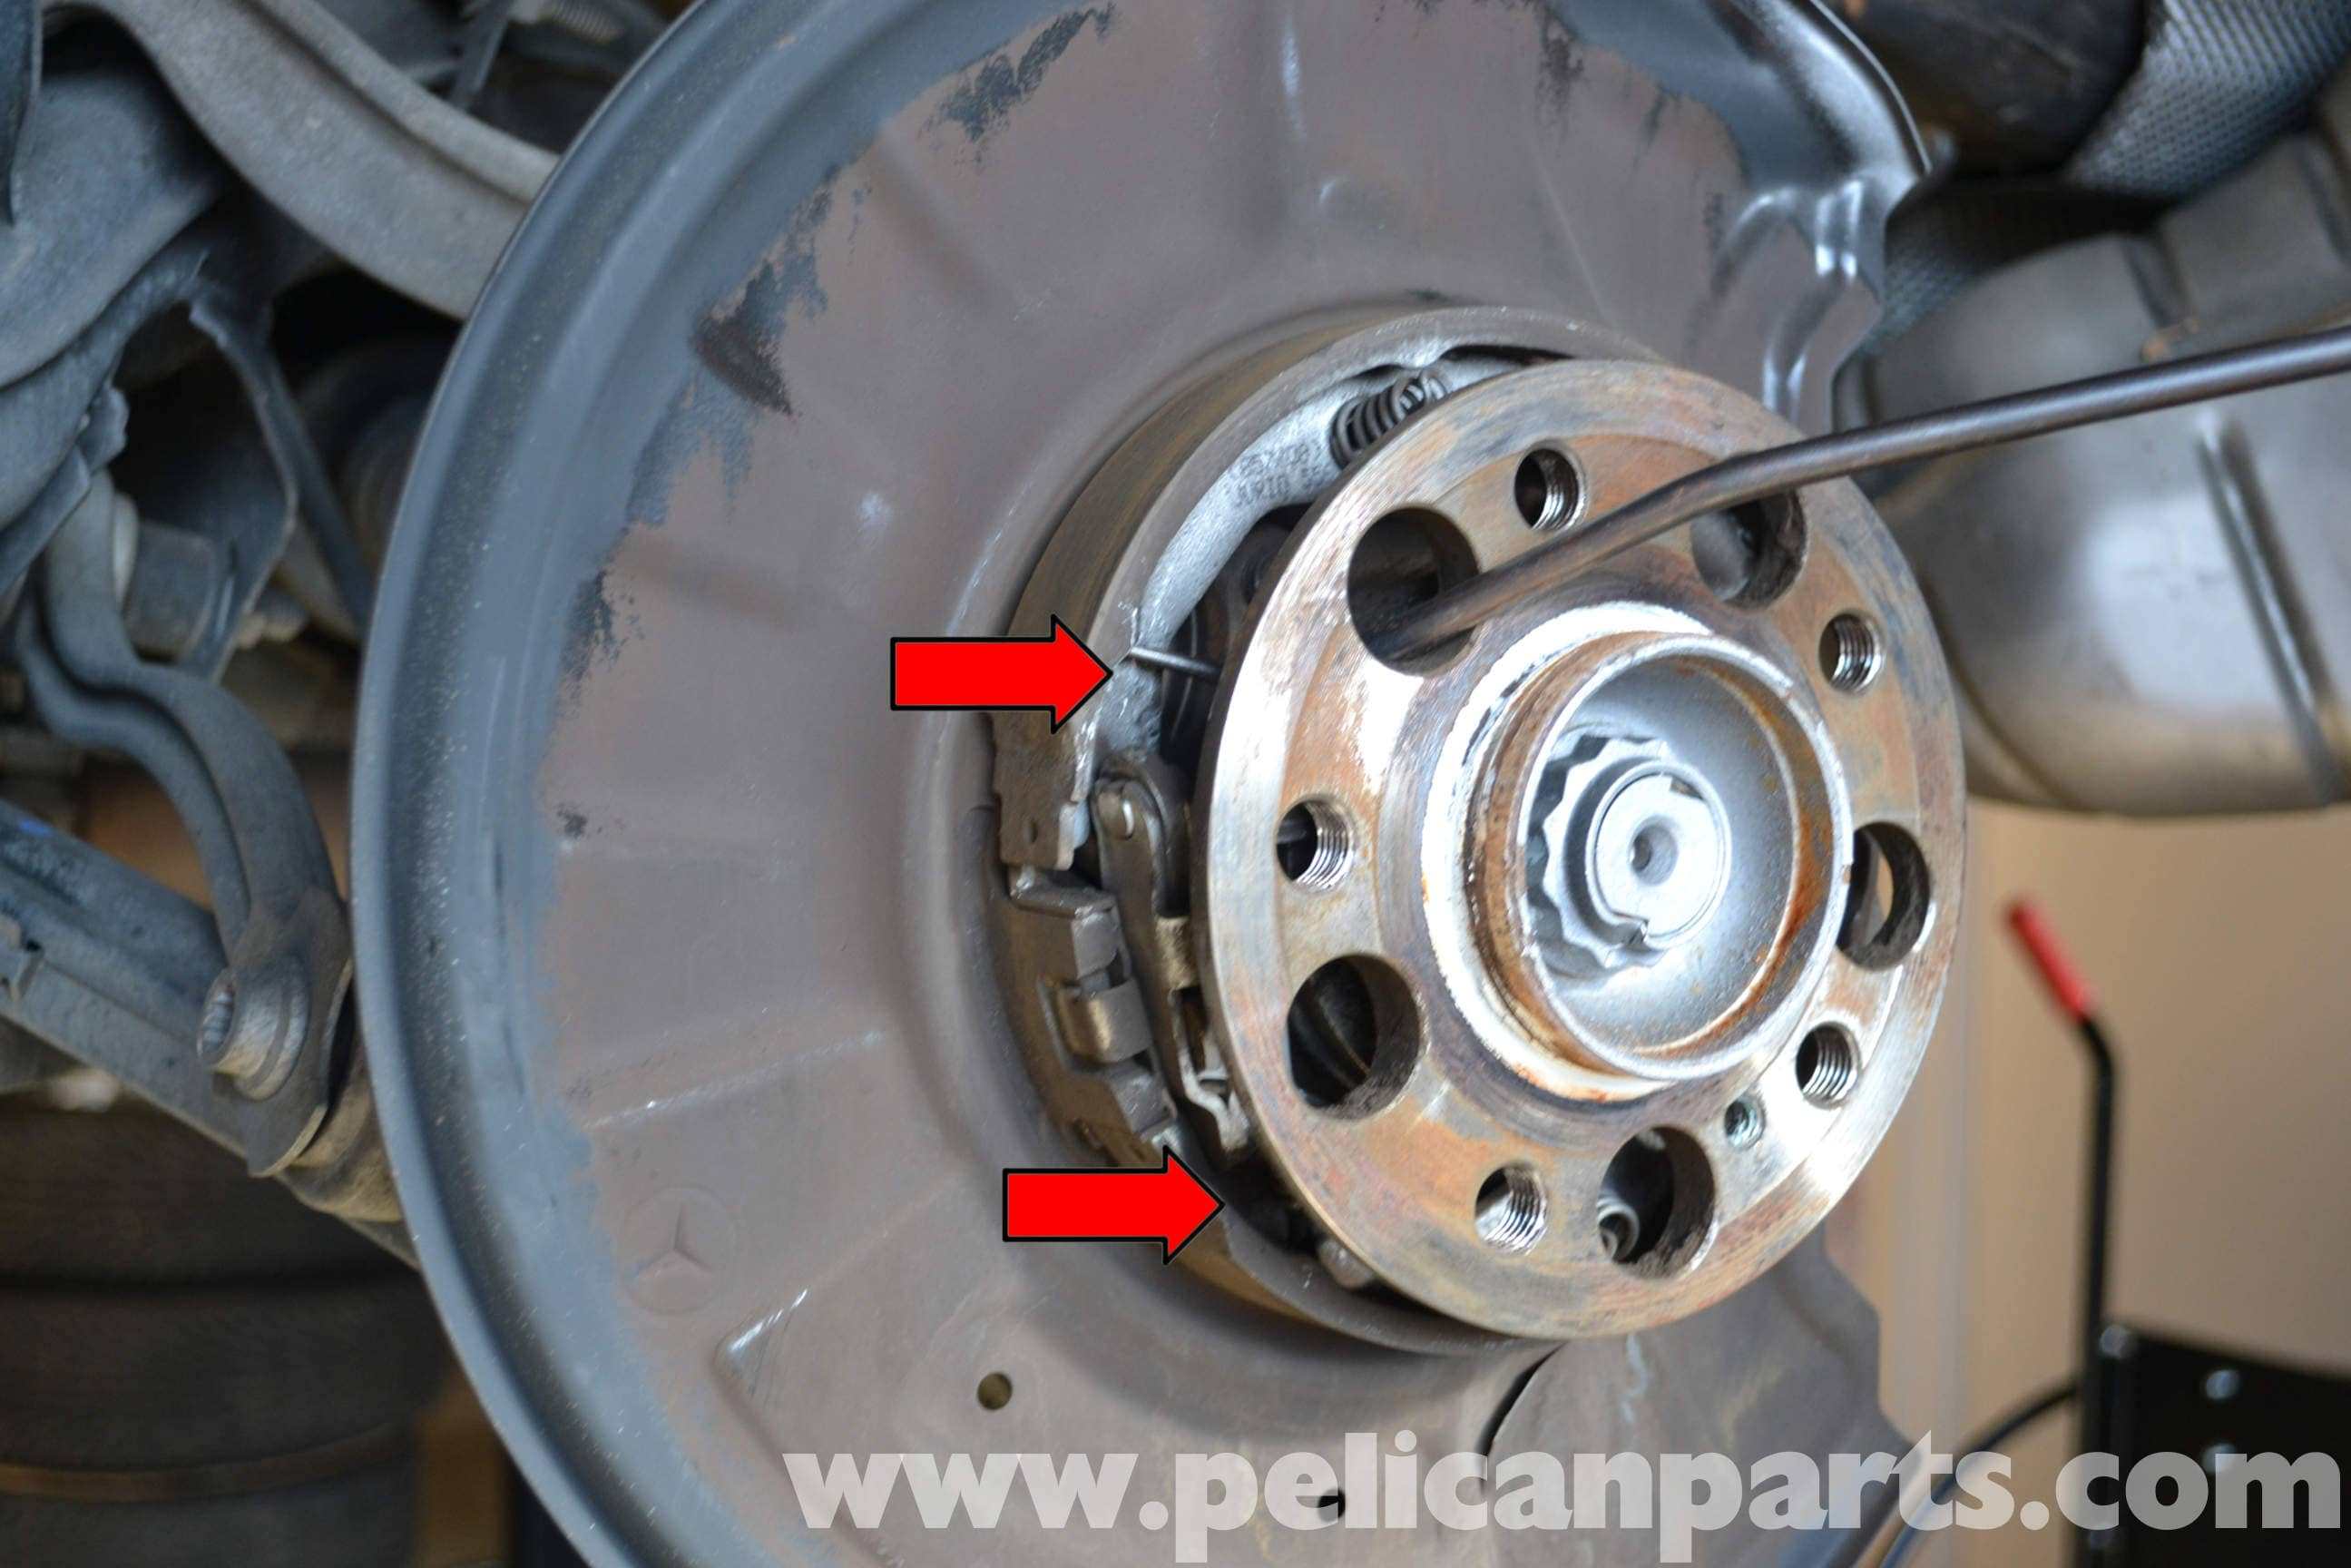 Buy Mercedes Benz A Class Replacement Parts Brake Pads - Www